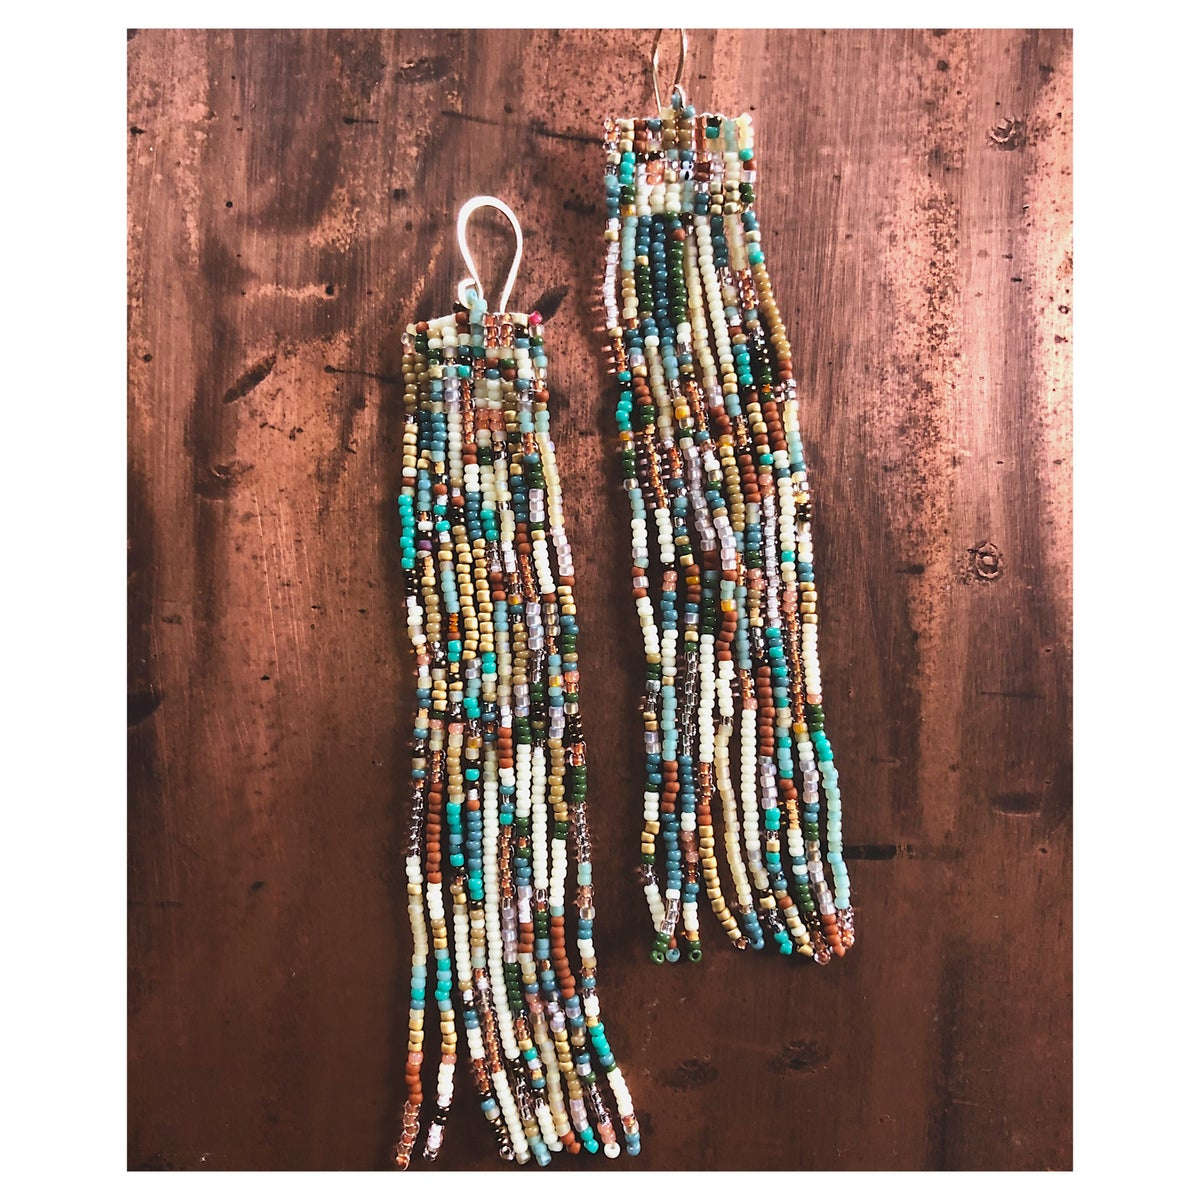 Image of Confetti Earrings in Earth Tones